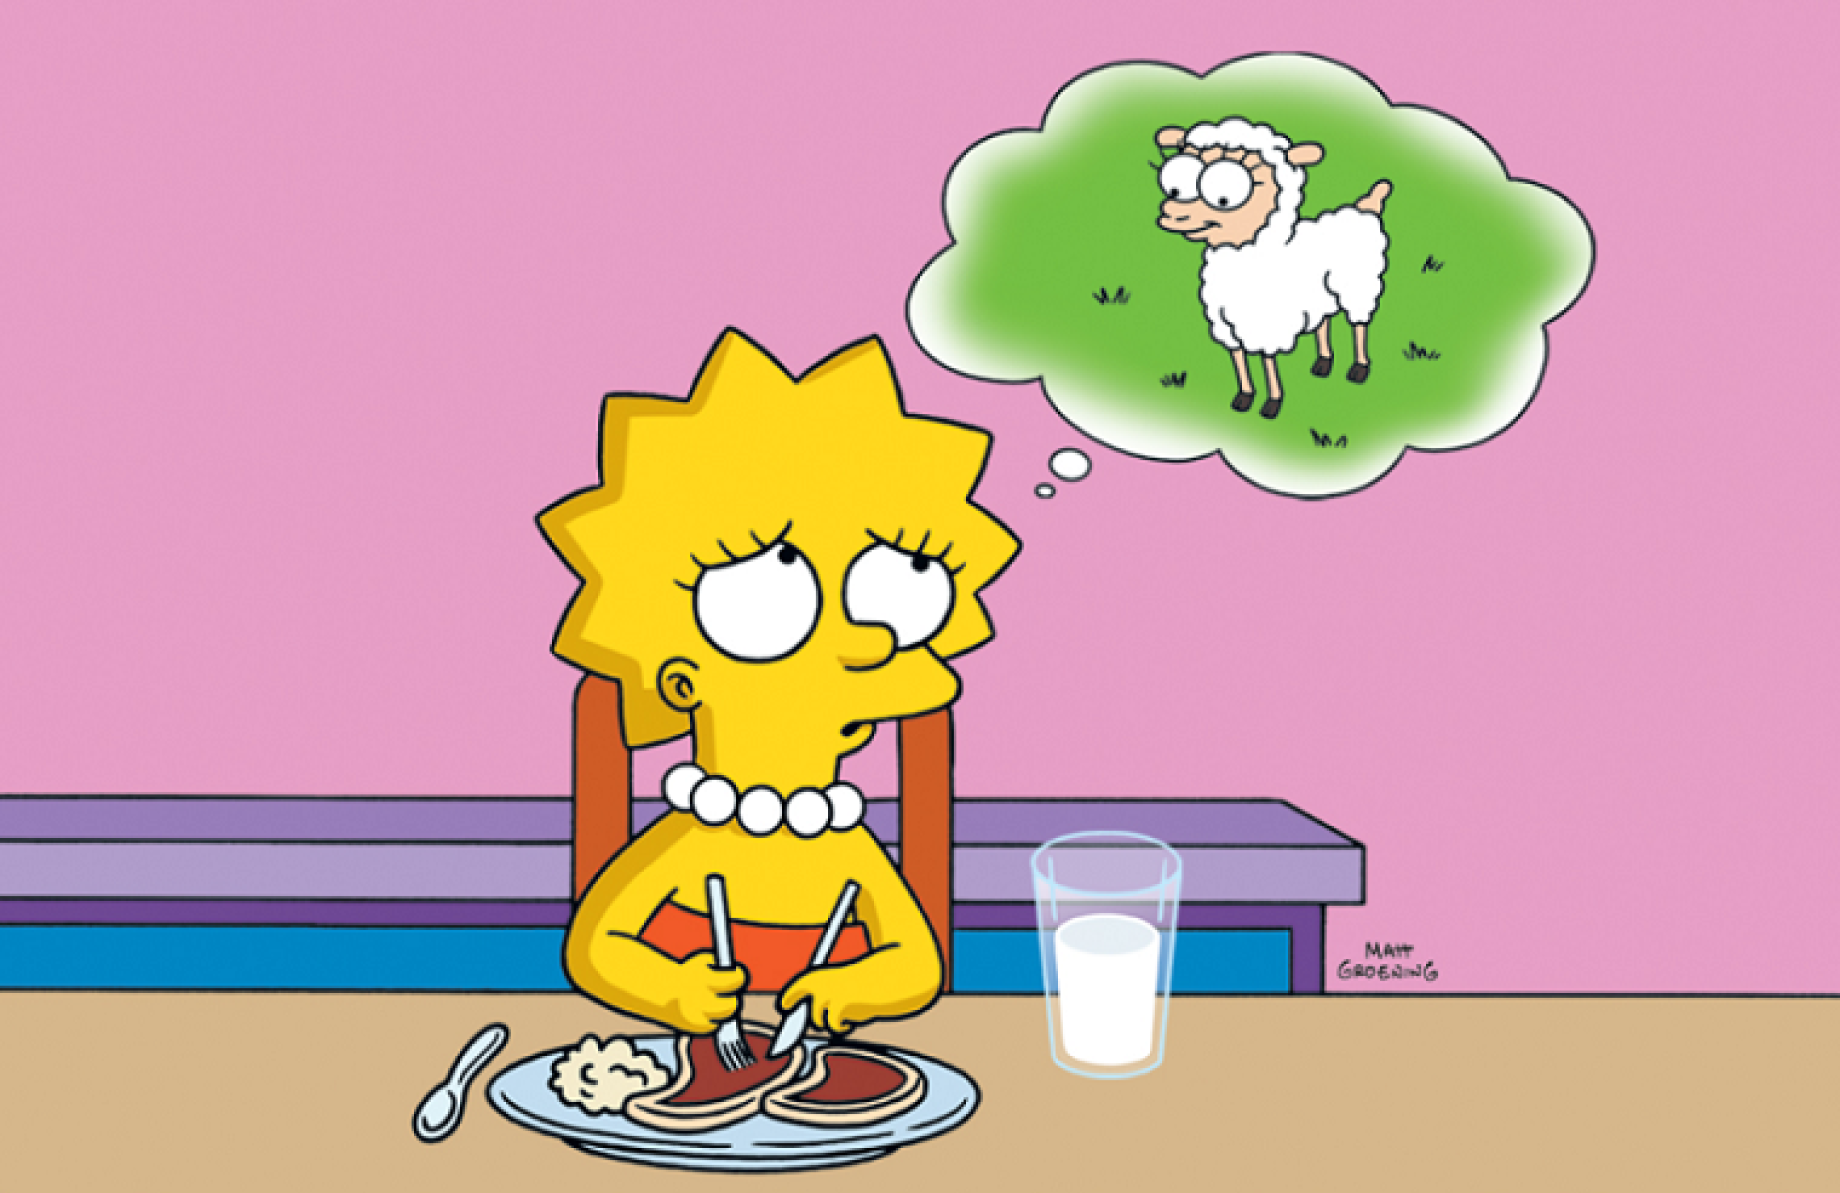 Lisa_the_vegetarian-800x519_rid